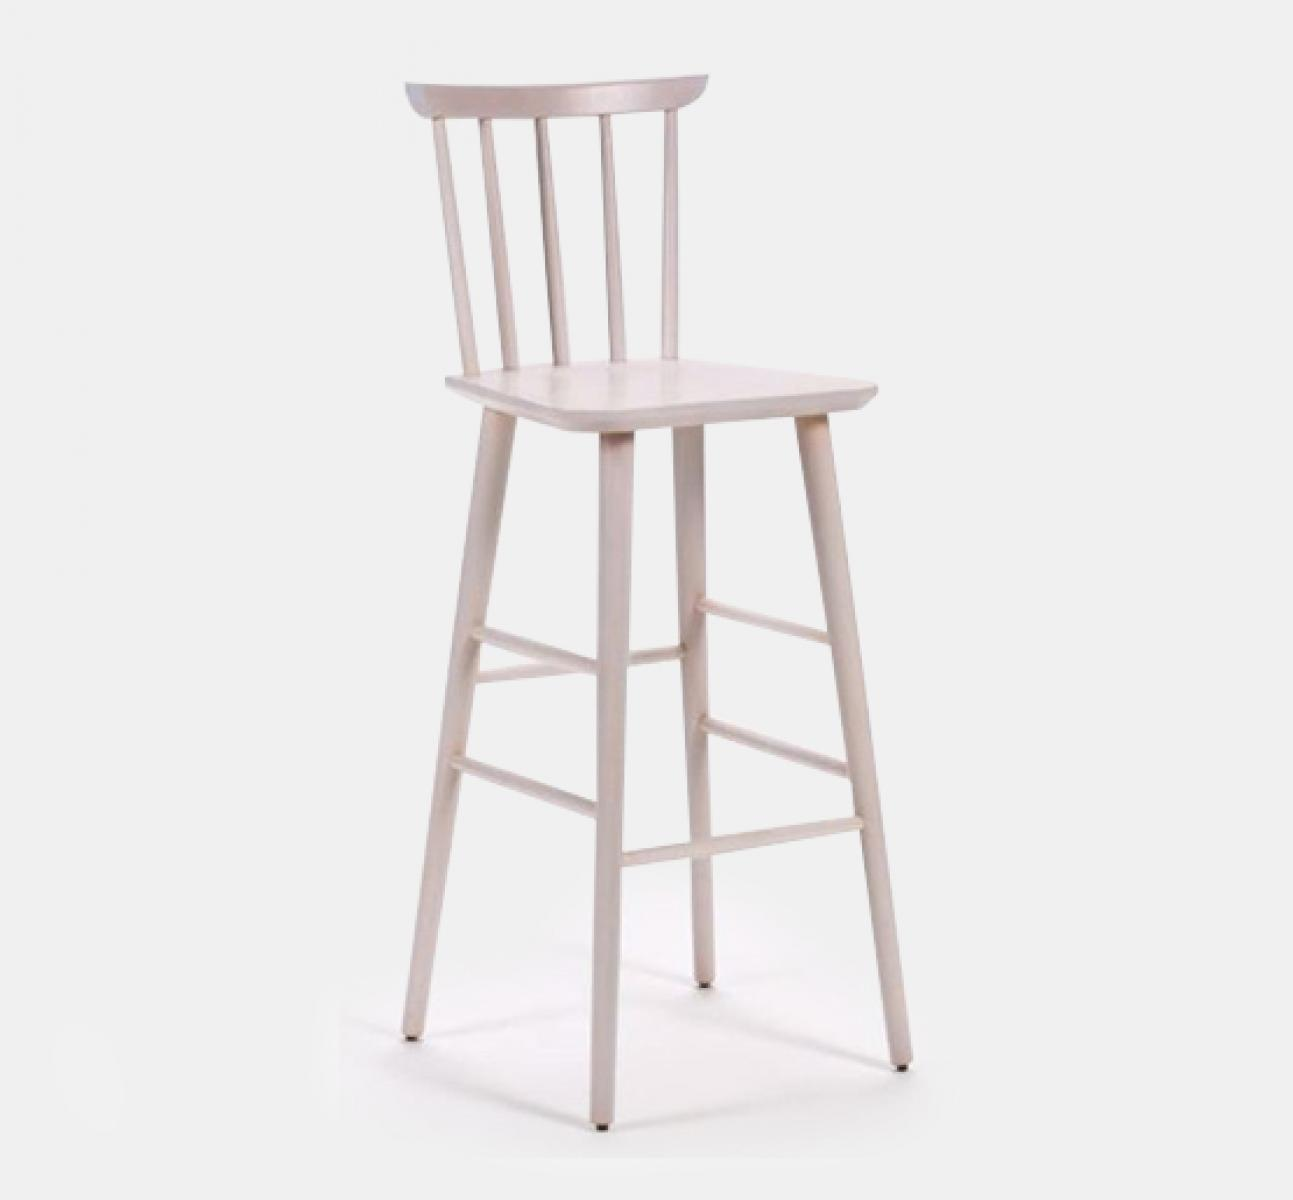 Bar Stools Glasgow Wooden Furniture Design Furniture